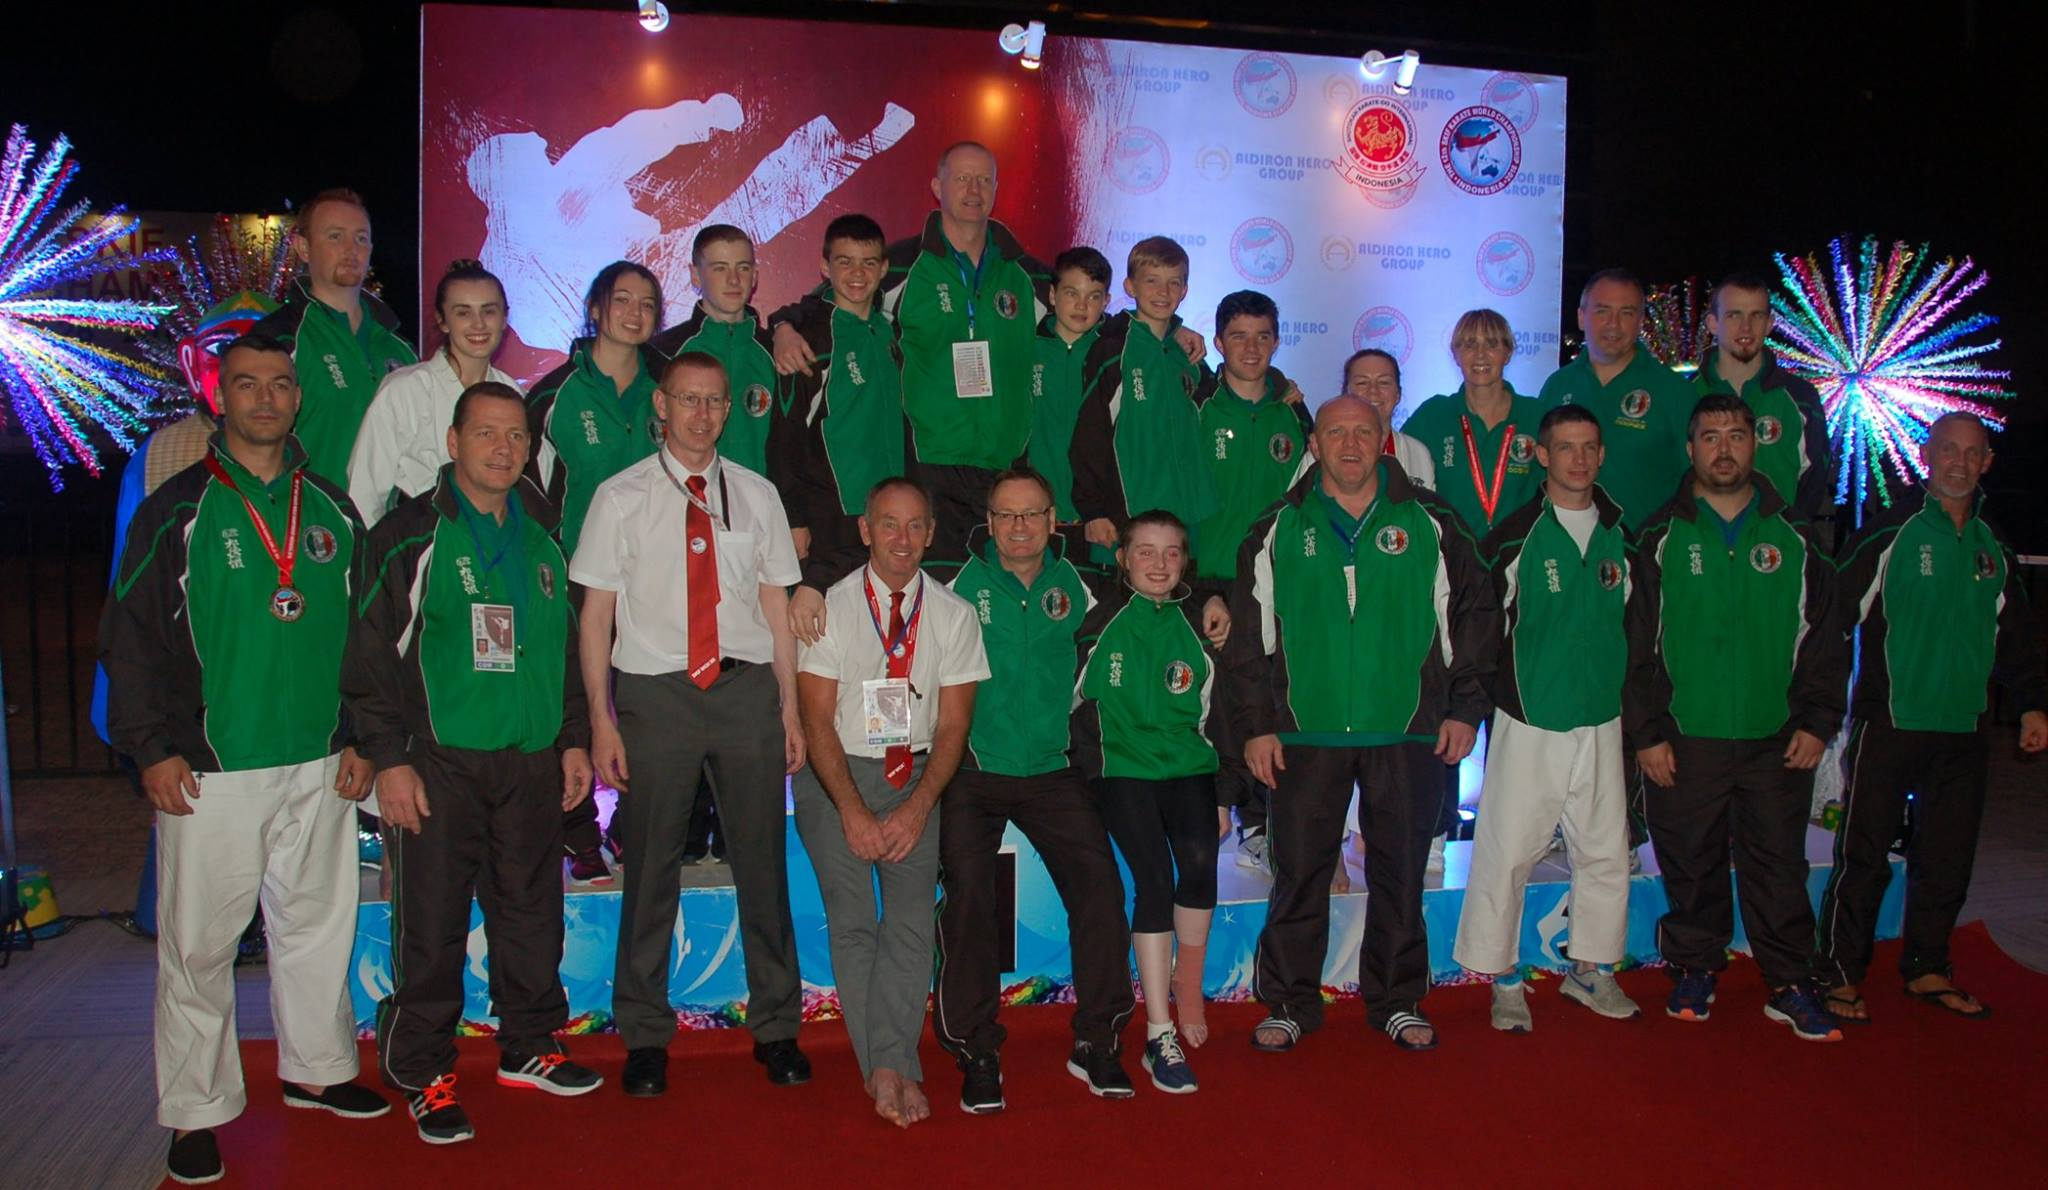 2016 - Ireland win 1xGold, 2xSilver & 6xBronze at SKIF World Championships in Jakarta Indonesia